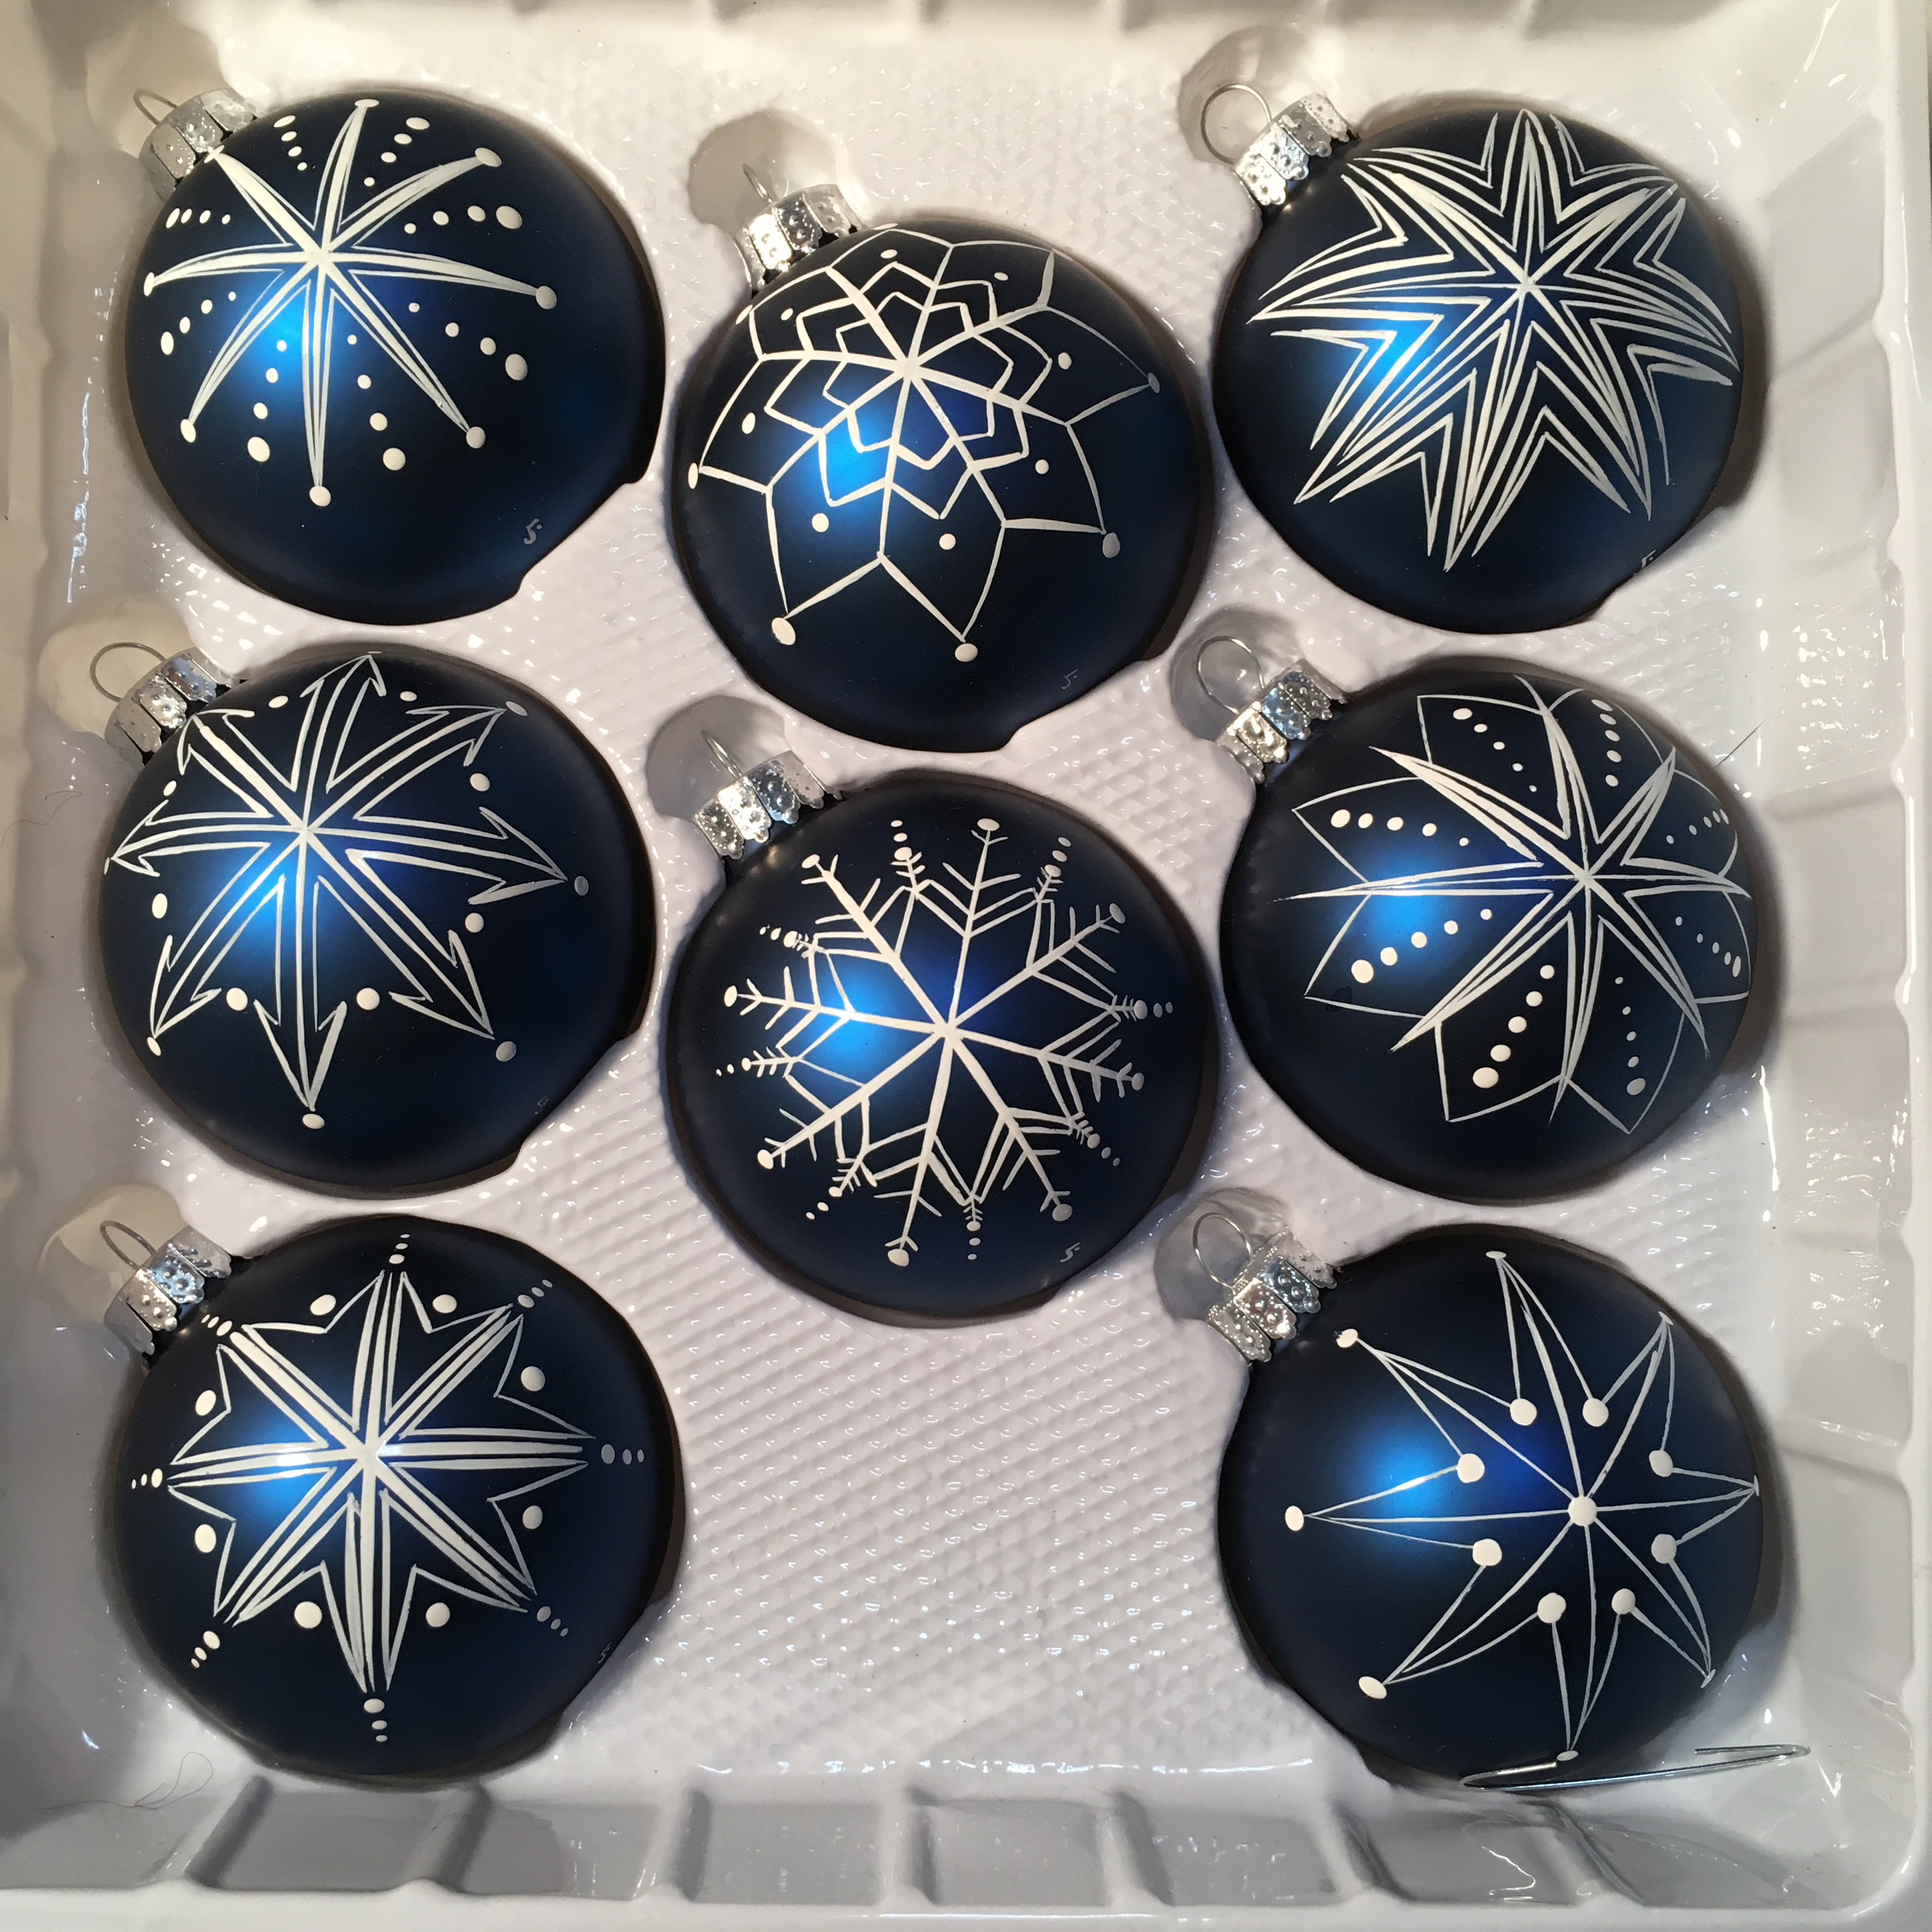 blue eye eyeball ornament